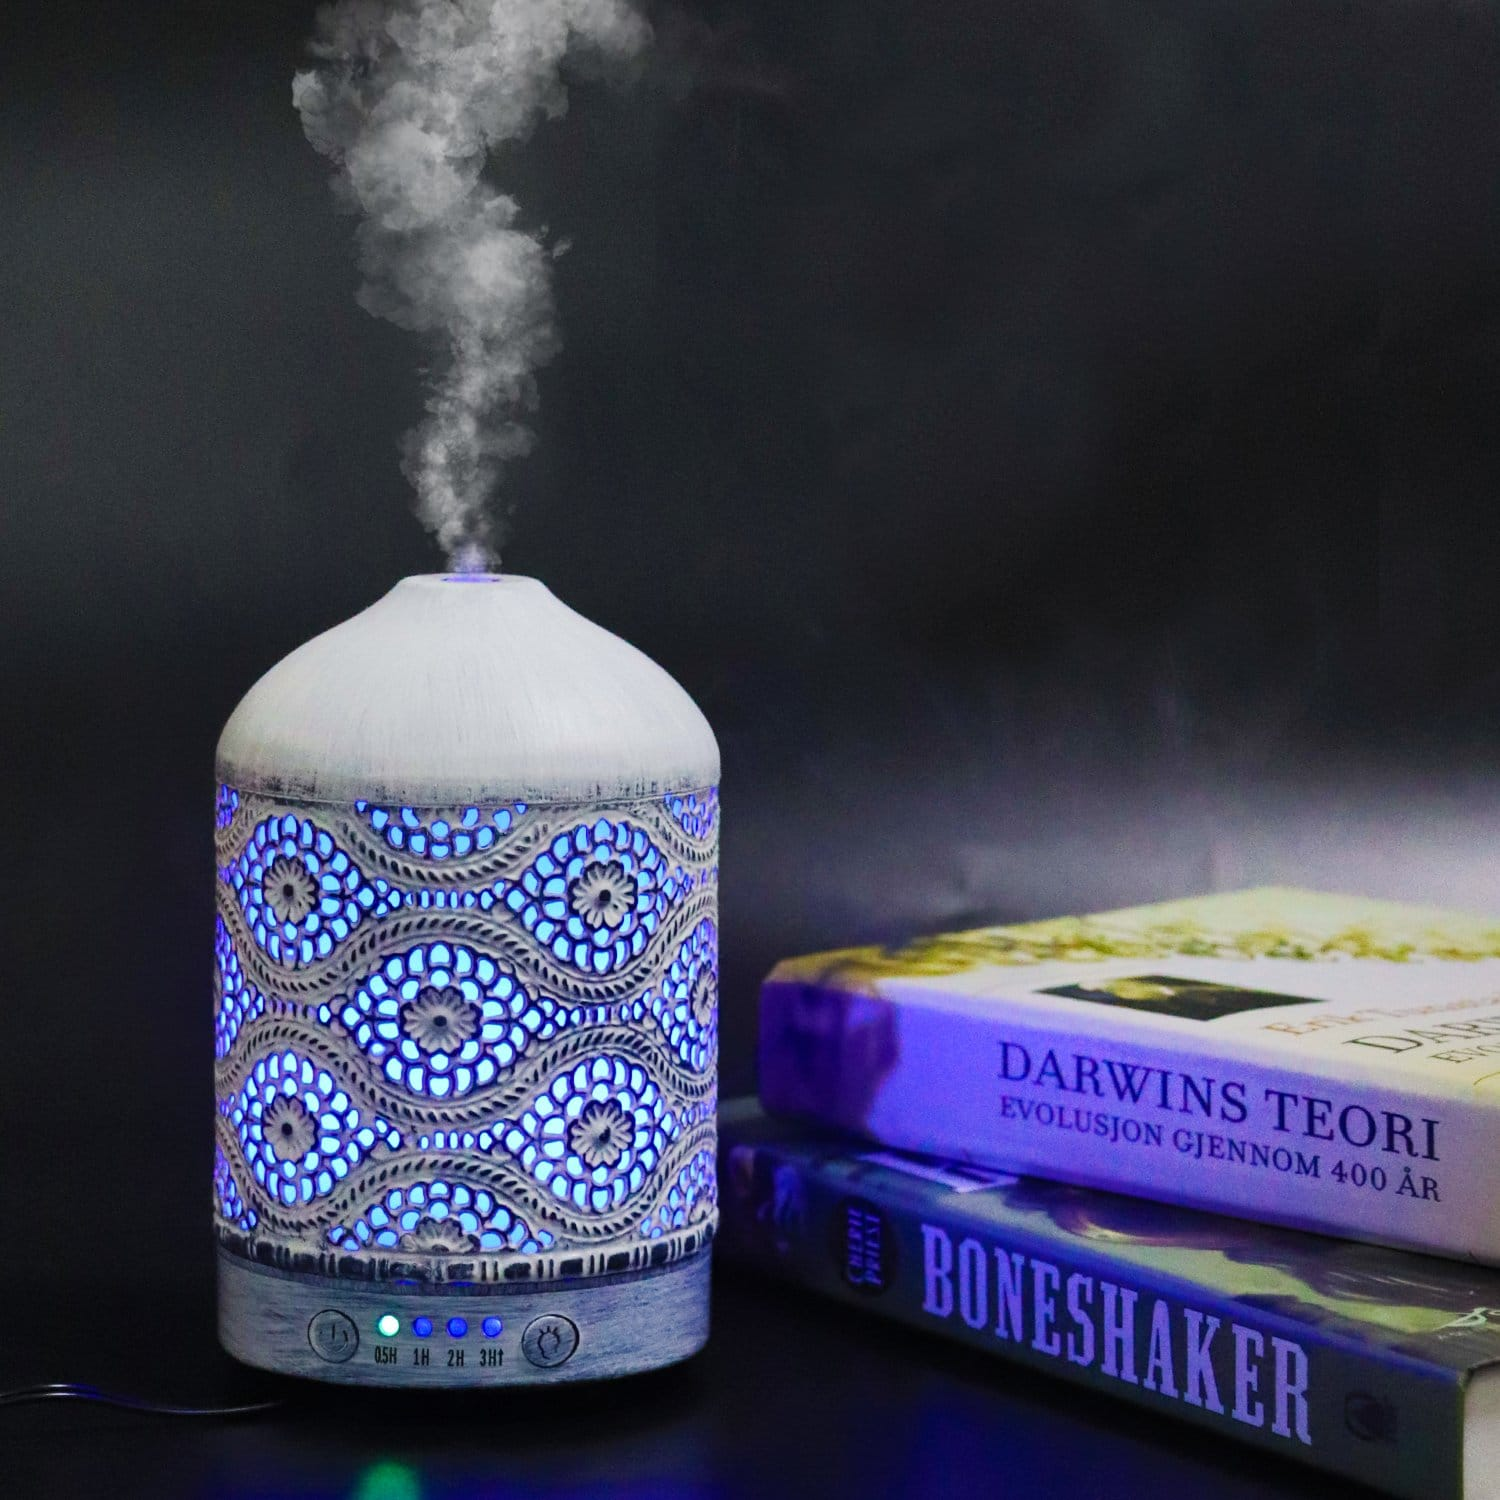 diffuser vs air purifier